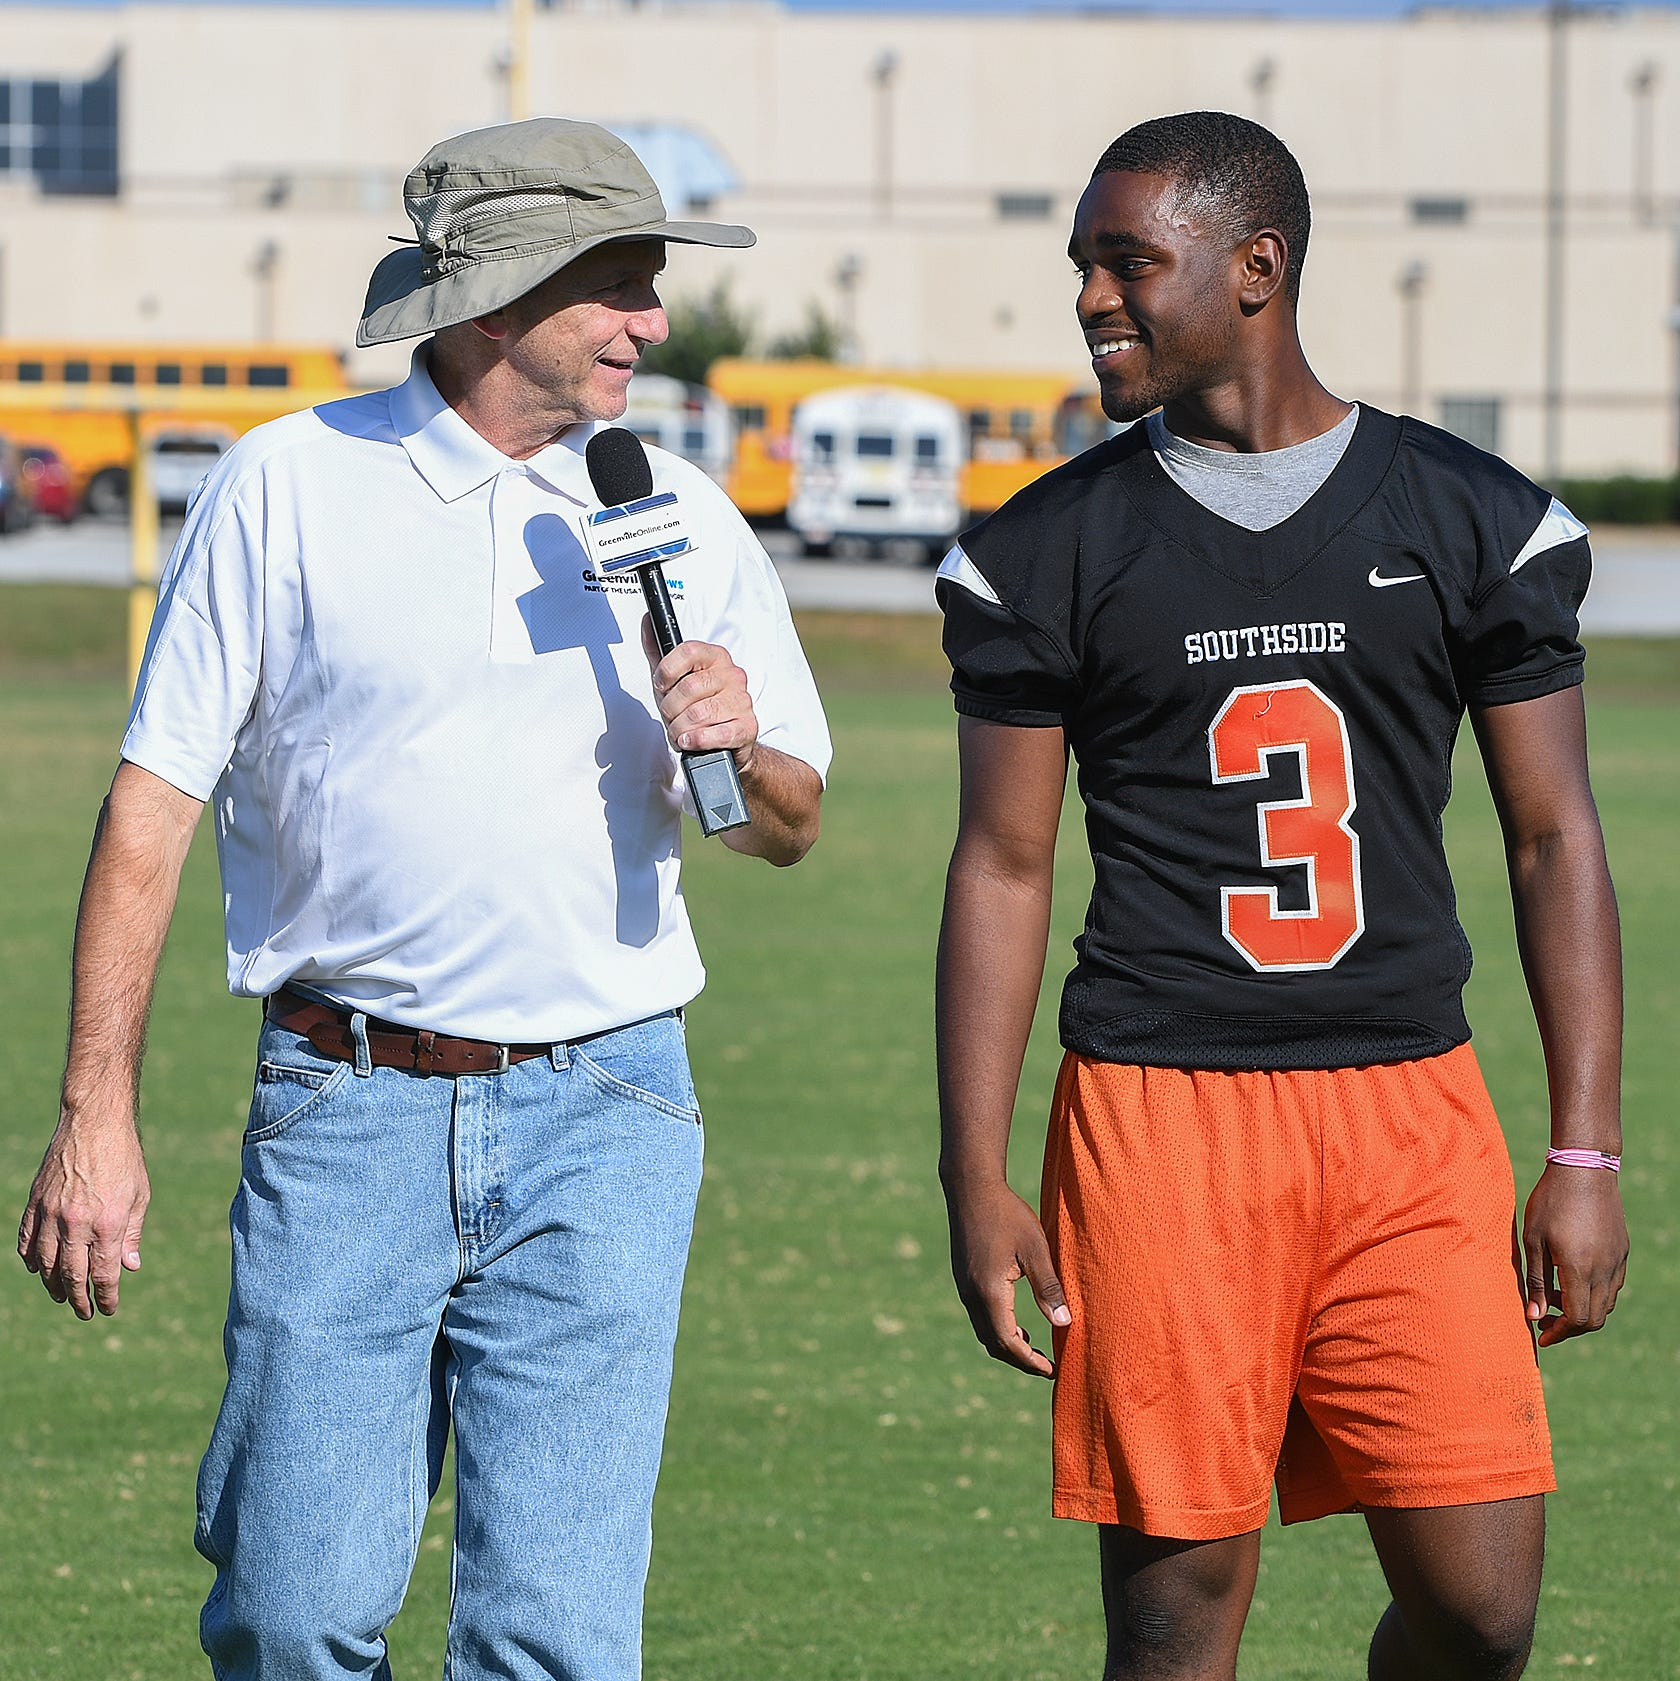 The Greenville News' Bob Castello walks 100 yards with Southside's Zion Kelly Monday, October 15, 2018.